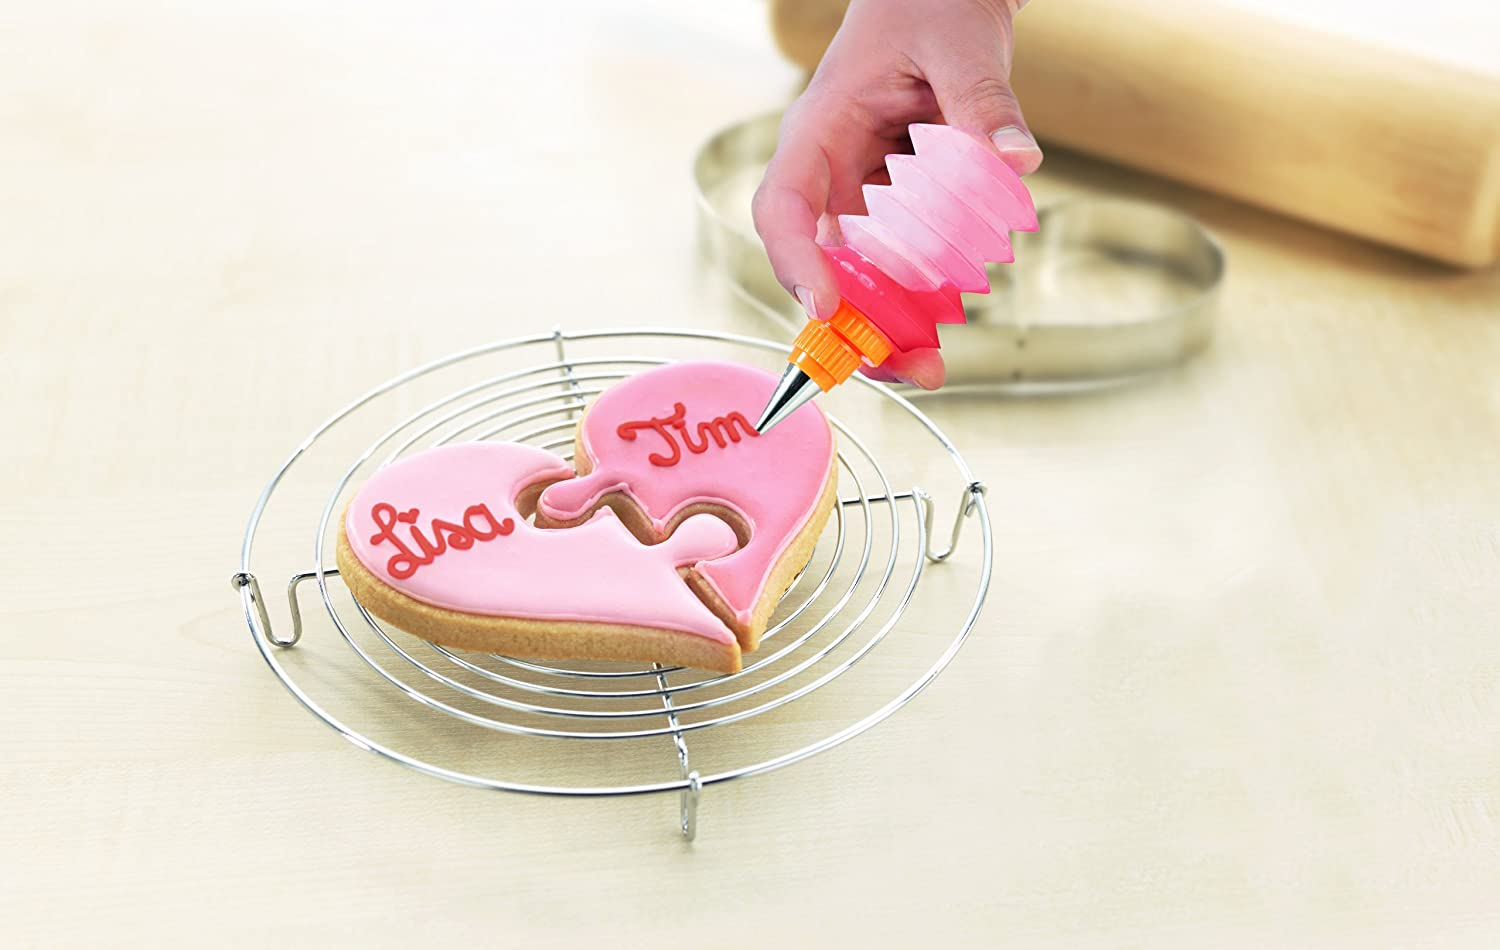 Amazon.com: Birkmann Valentine Heart Shaped Cookie for Two Cutters ...